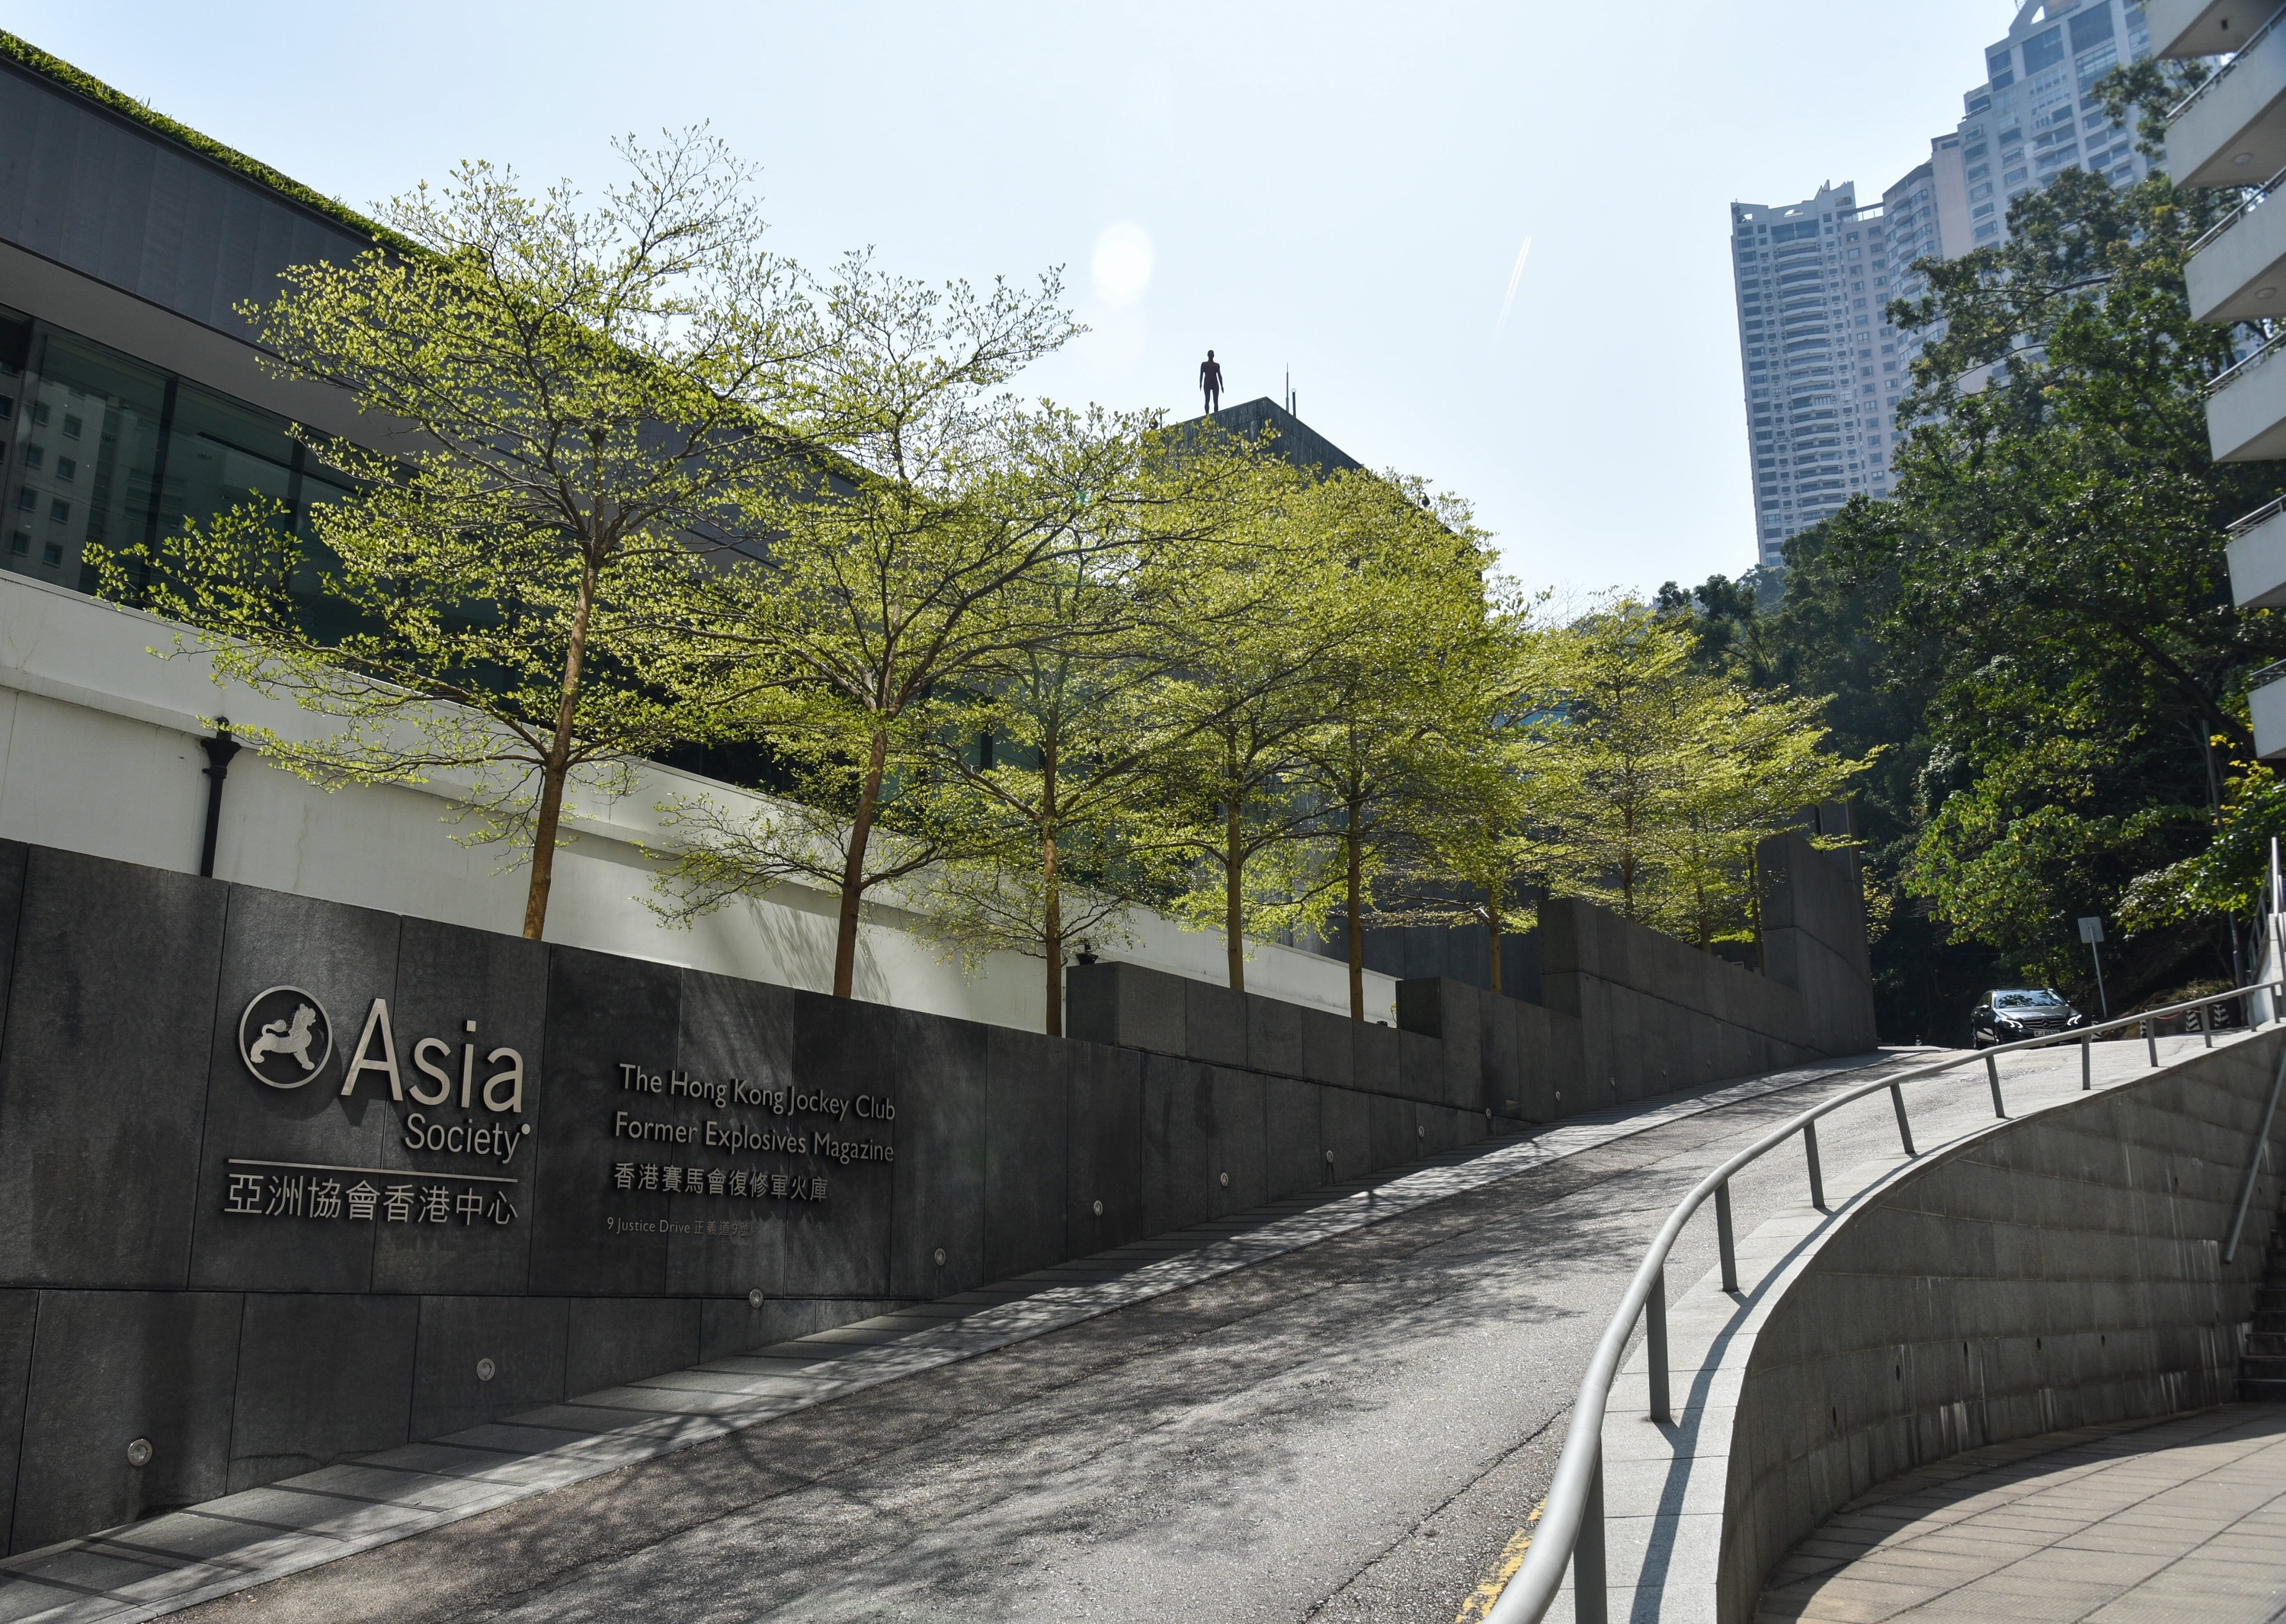 Asia Society. Image: Annette Chan